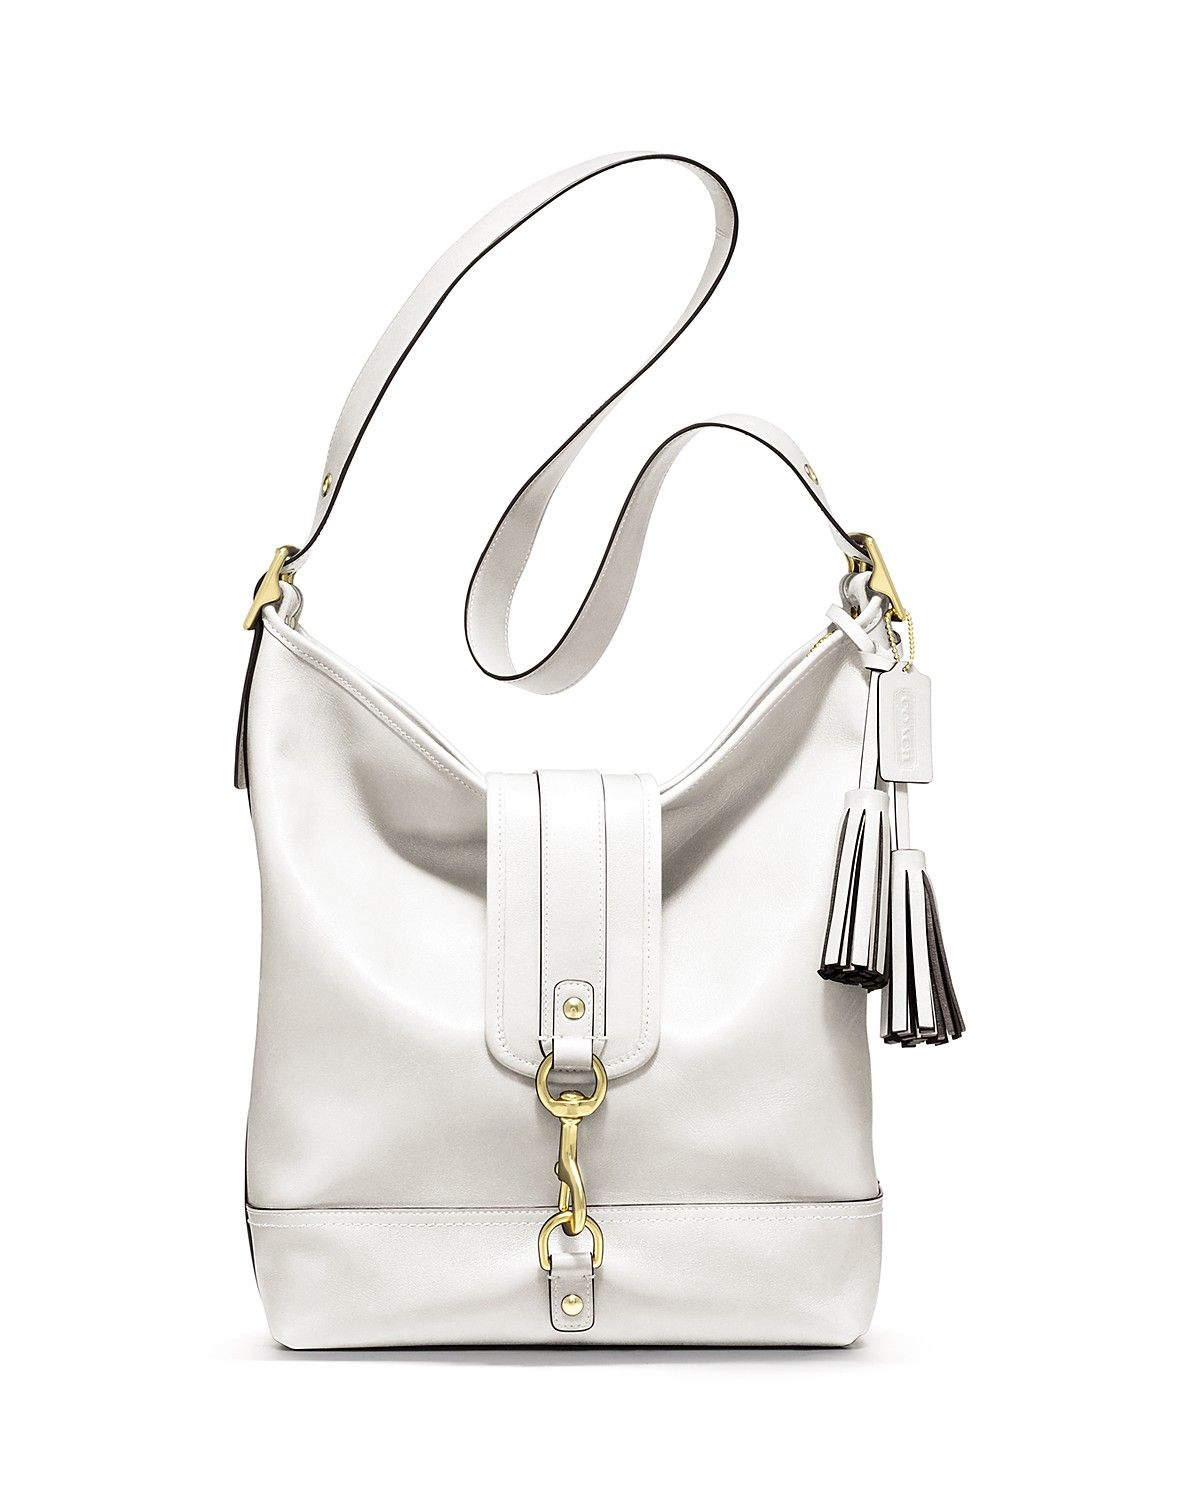 Goes with a sizzling summer: white hot!  COACH Legacy Leather Large Dogleash Duffle | Bloomingdale's